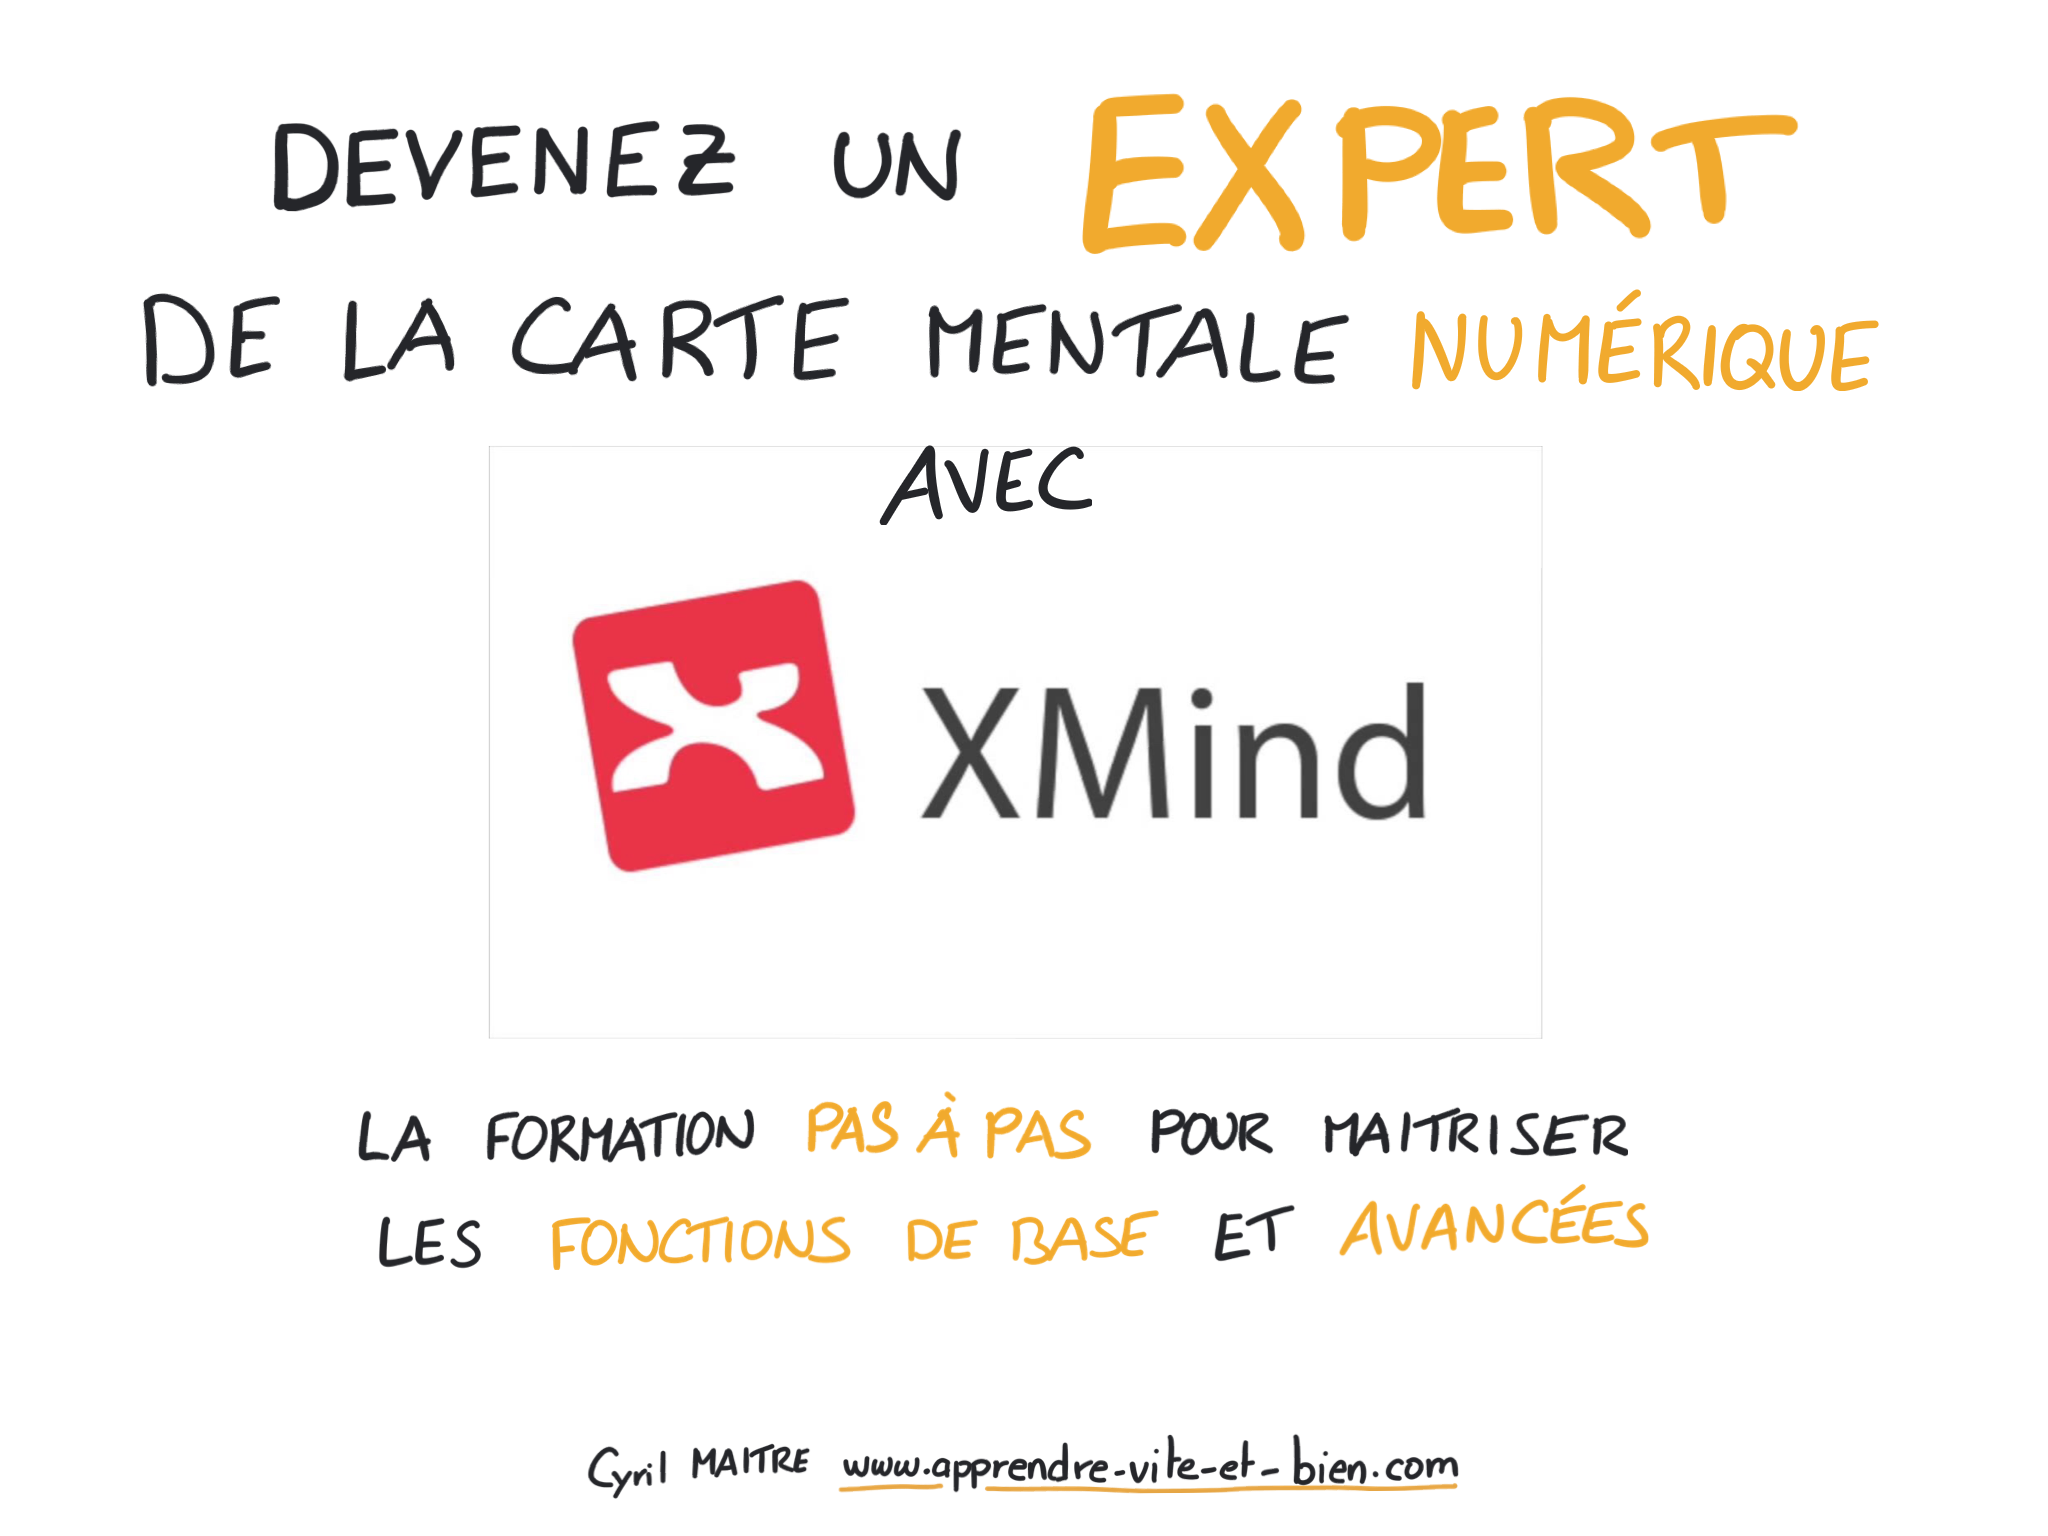 Formation Xmind 8 Expert